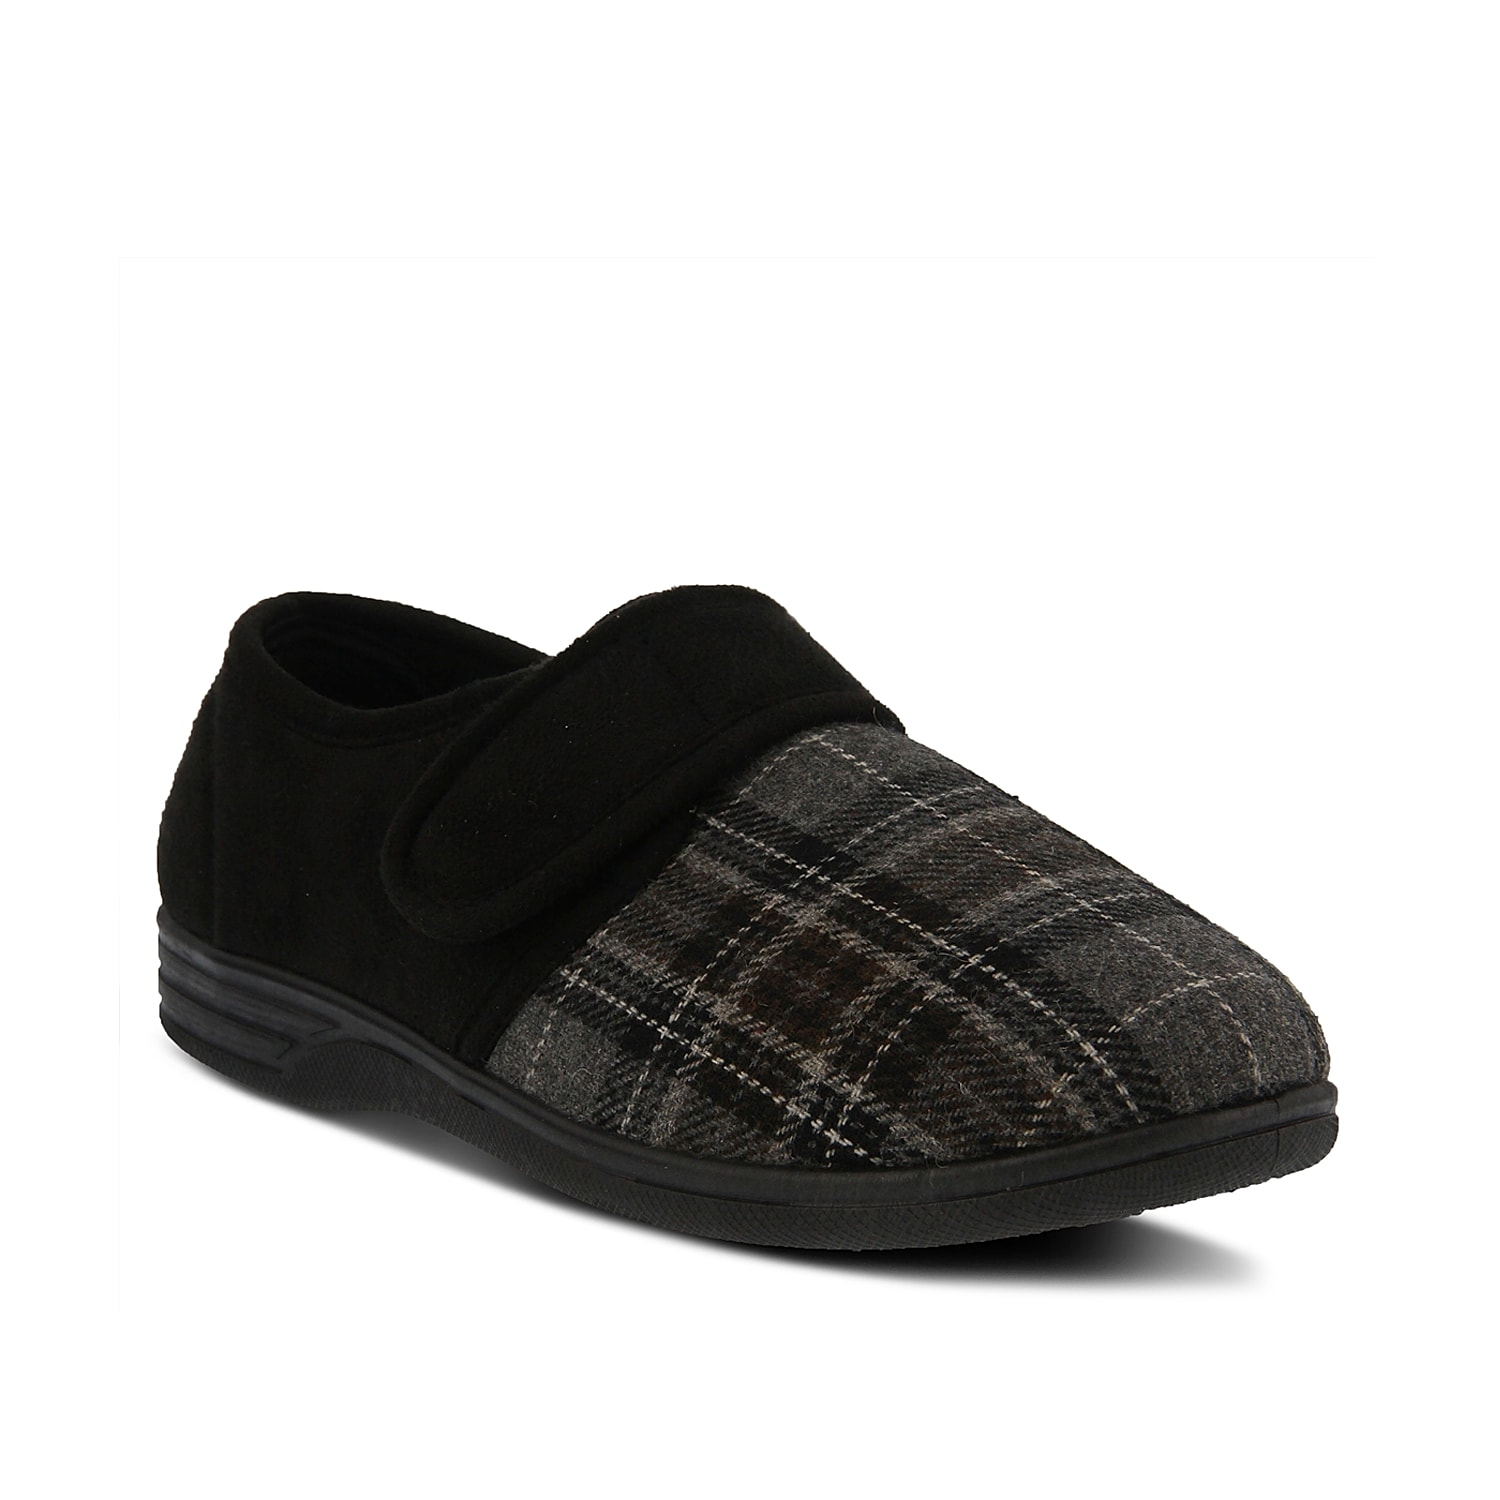 Staying cozy just got alot easier with the Boris slipper from Spring Step. Featuring a soft flannel construction and adjustable hook and loop strap, this slipper will have you feeling comfortable and secure.